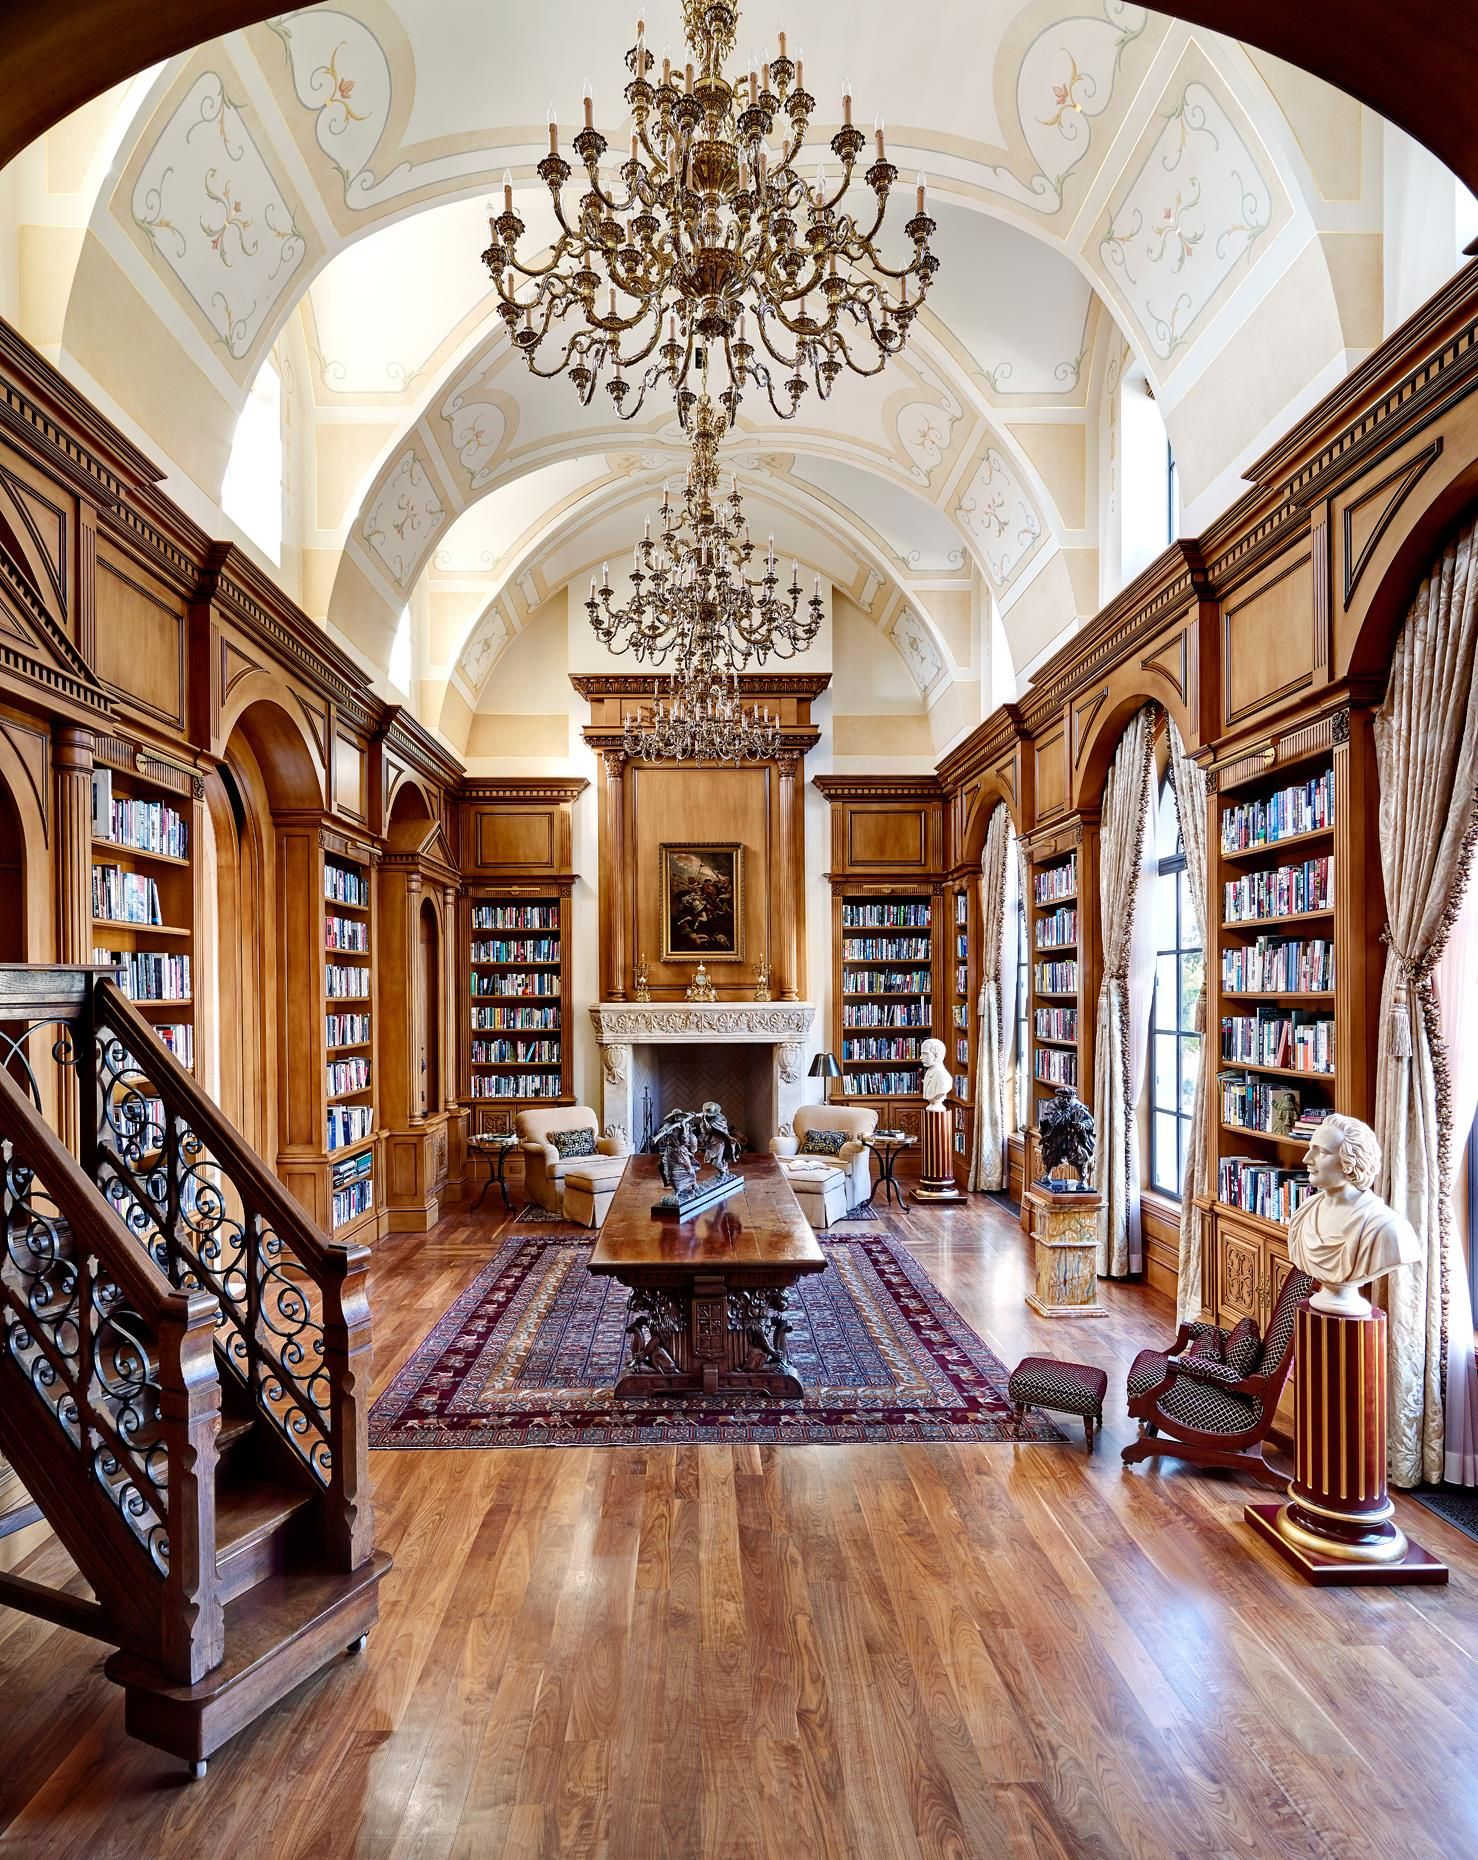 Private Library Study Rooms: Gorgeous Libraries To Inspire Your Home Library